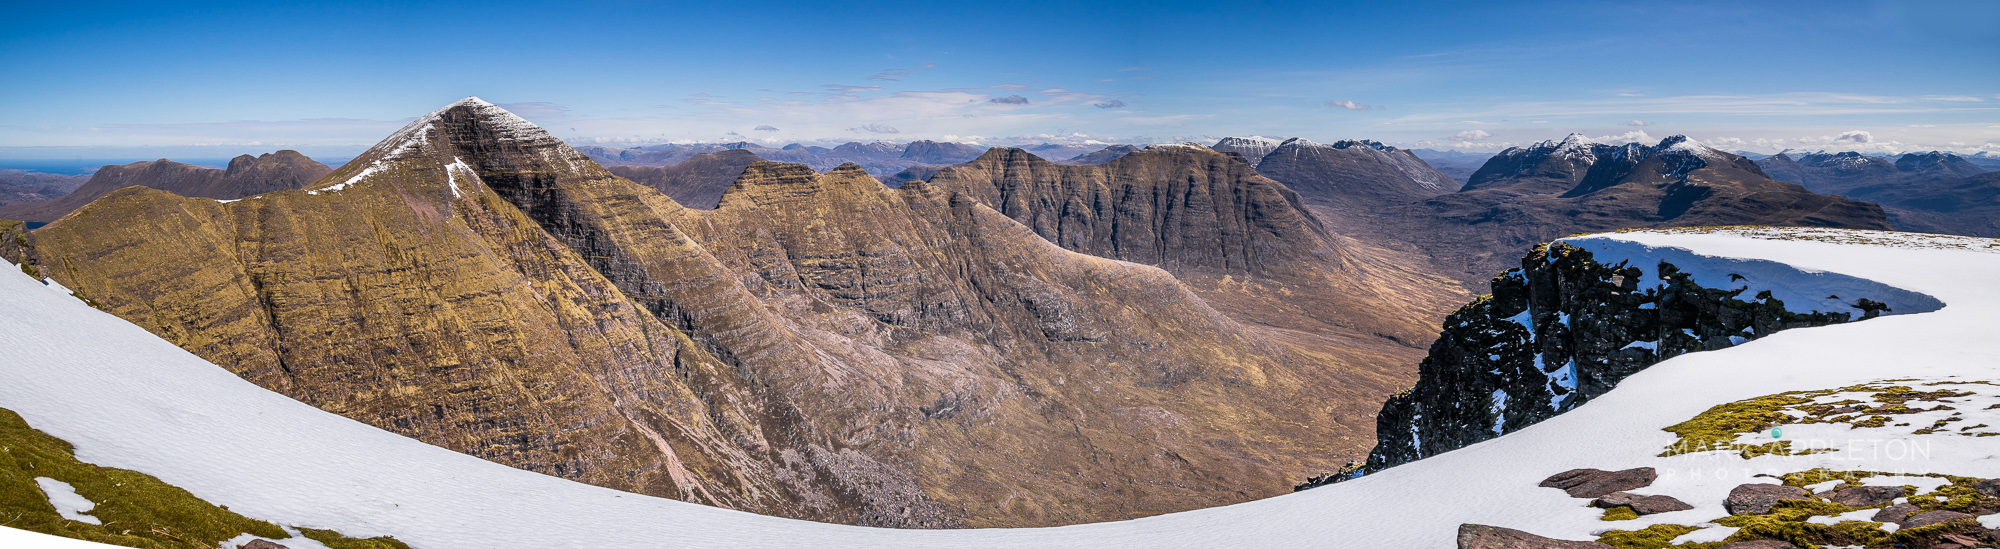 Torridon panoramic